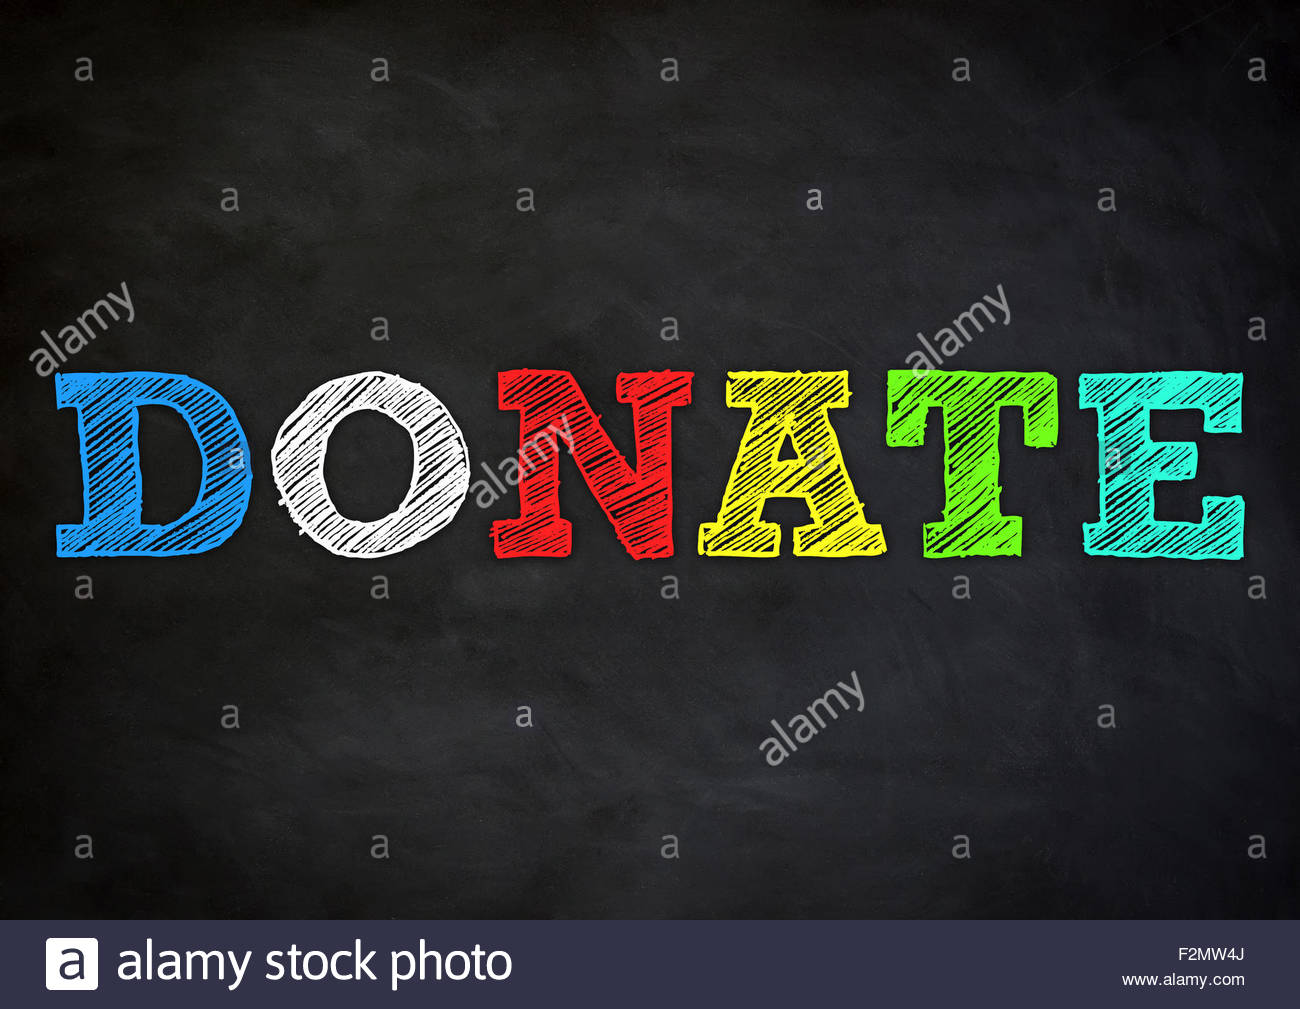 Donate - Stock Image